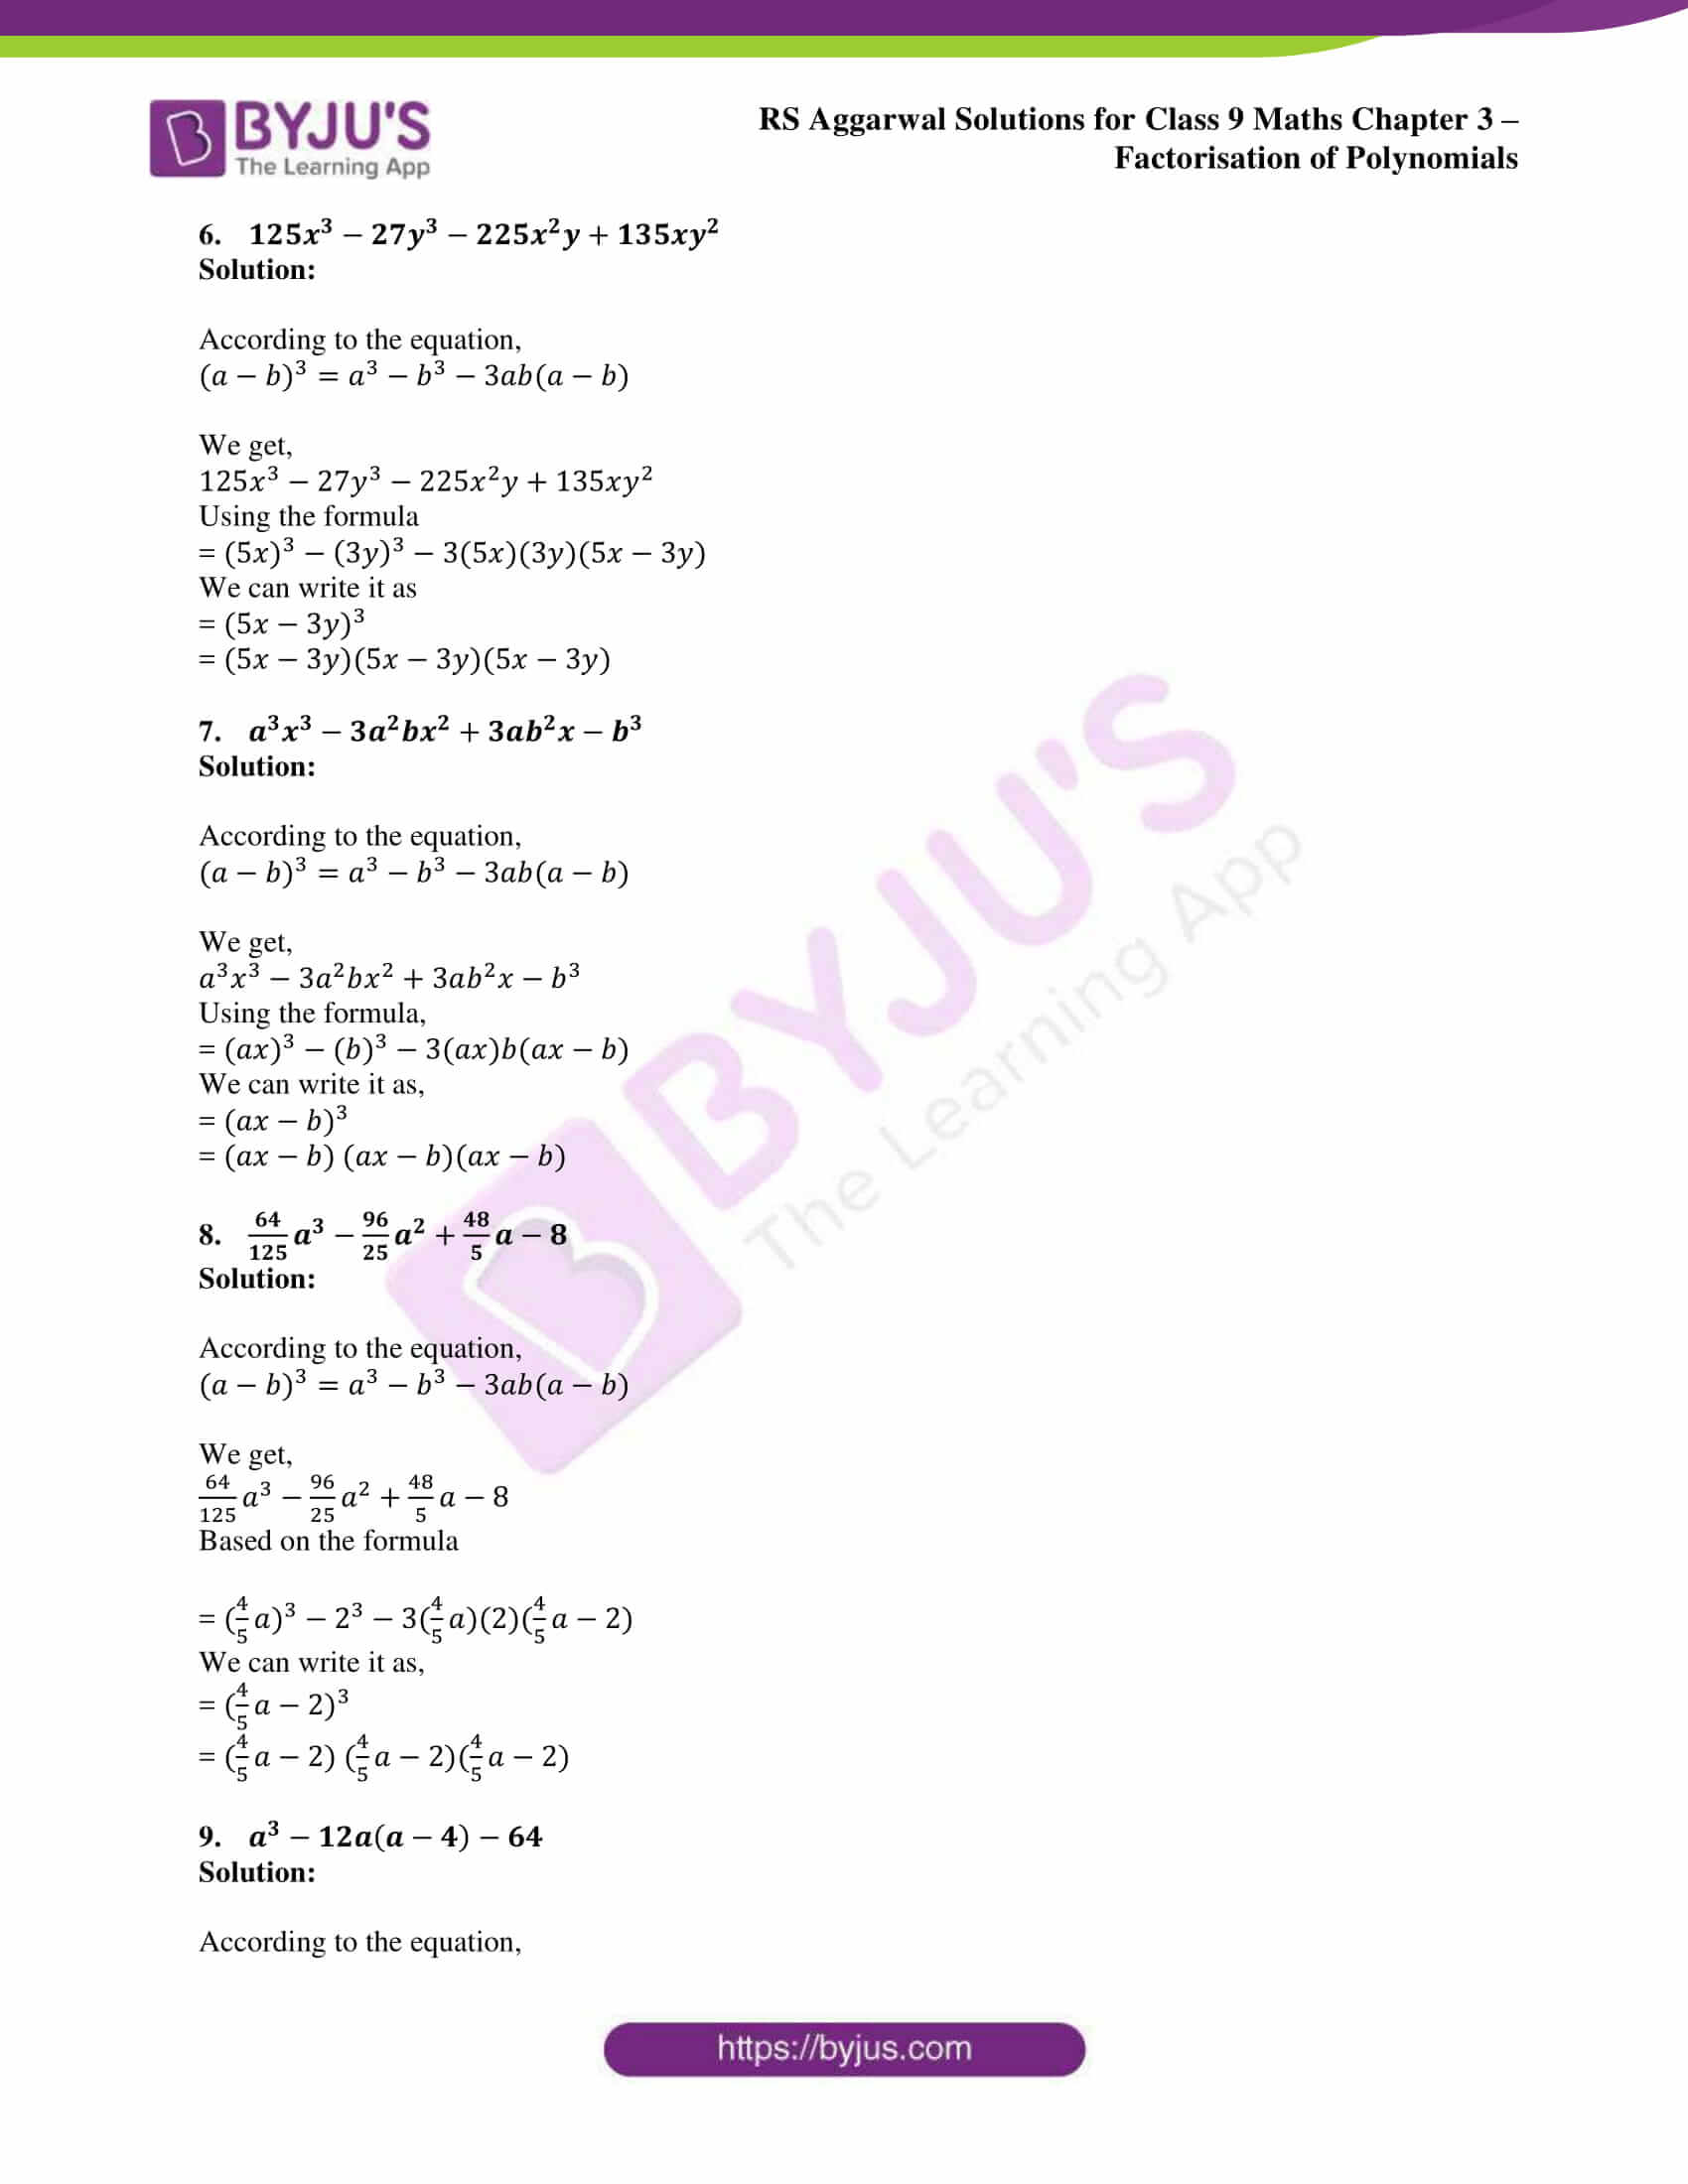 RS Aggarwal Sol class 9 Maths Chapter 3